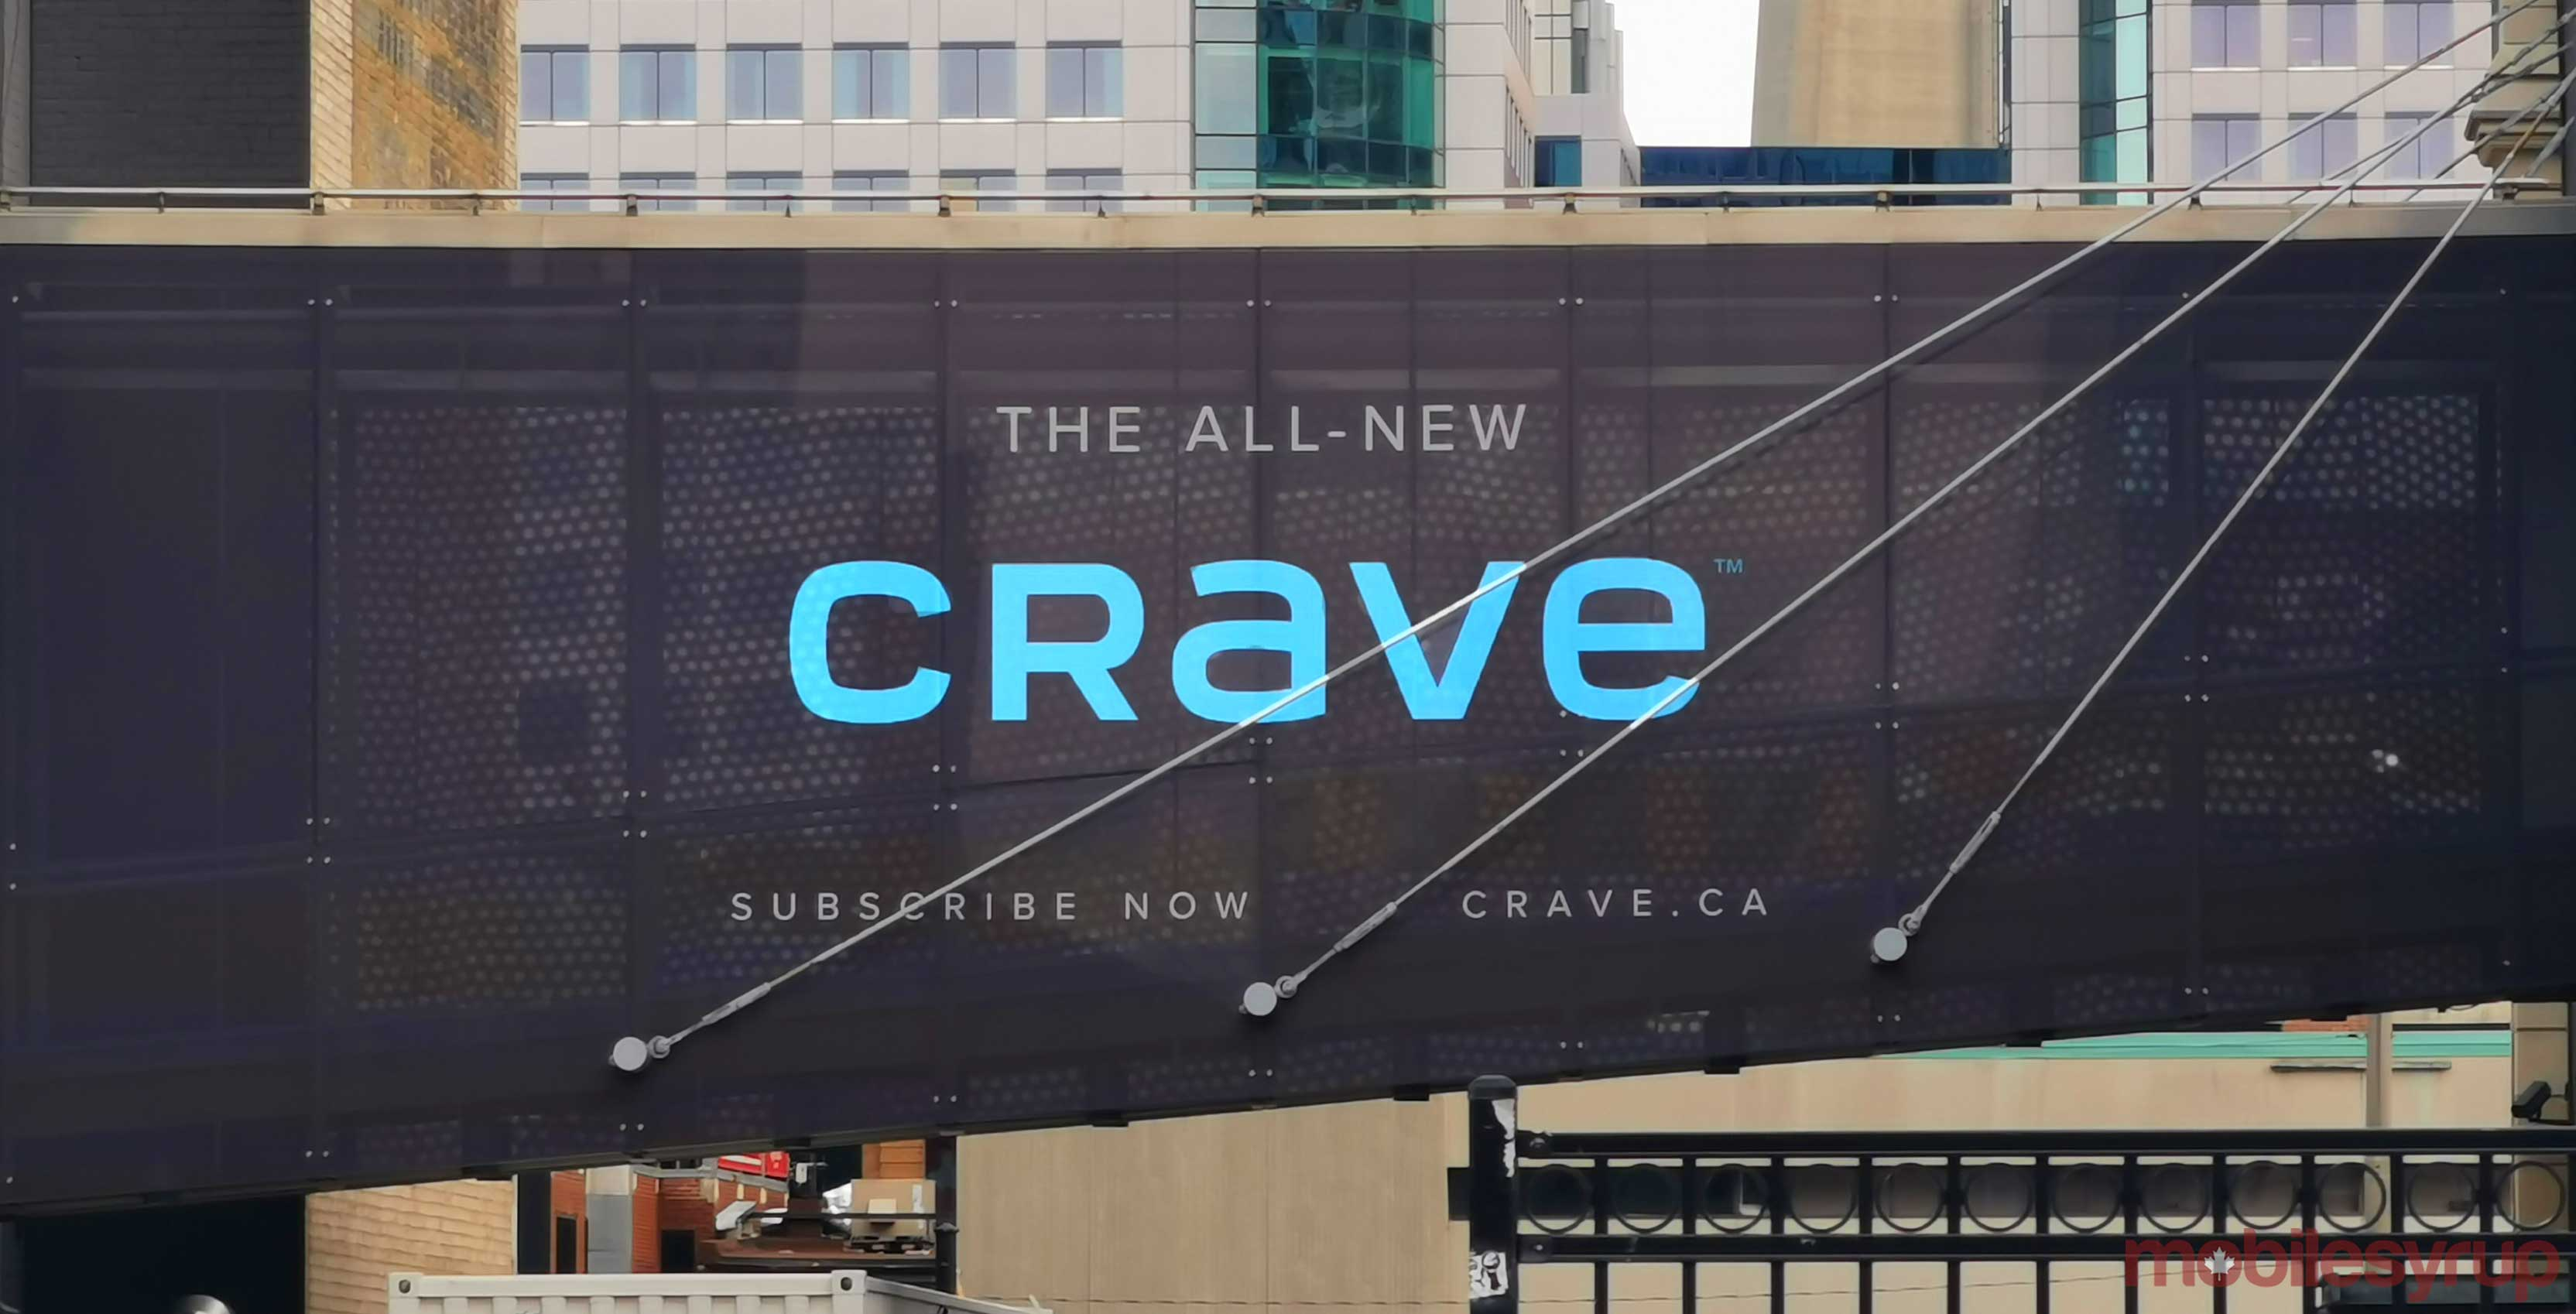 Here's what's coming to Crave in December 2019